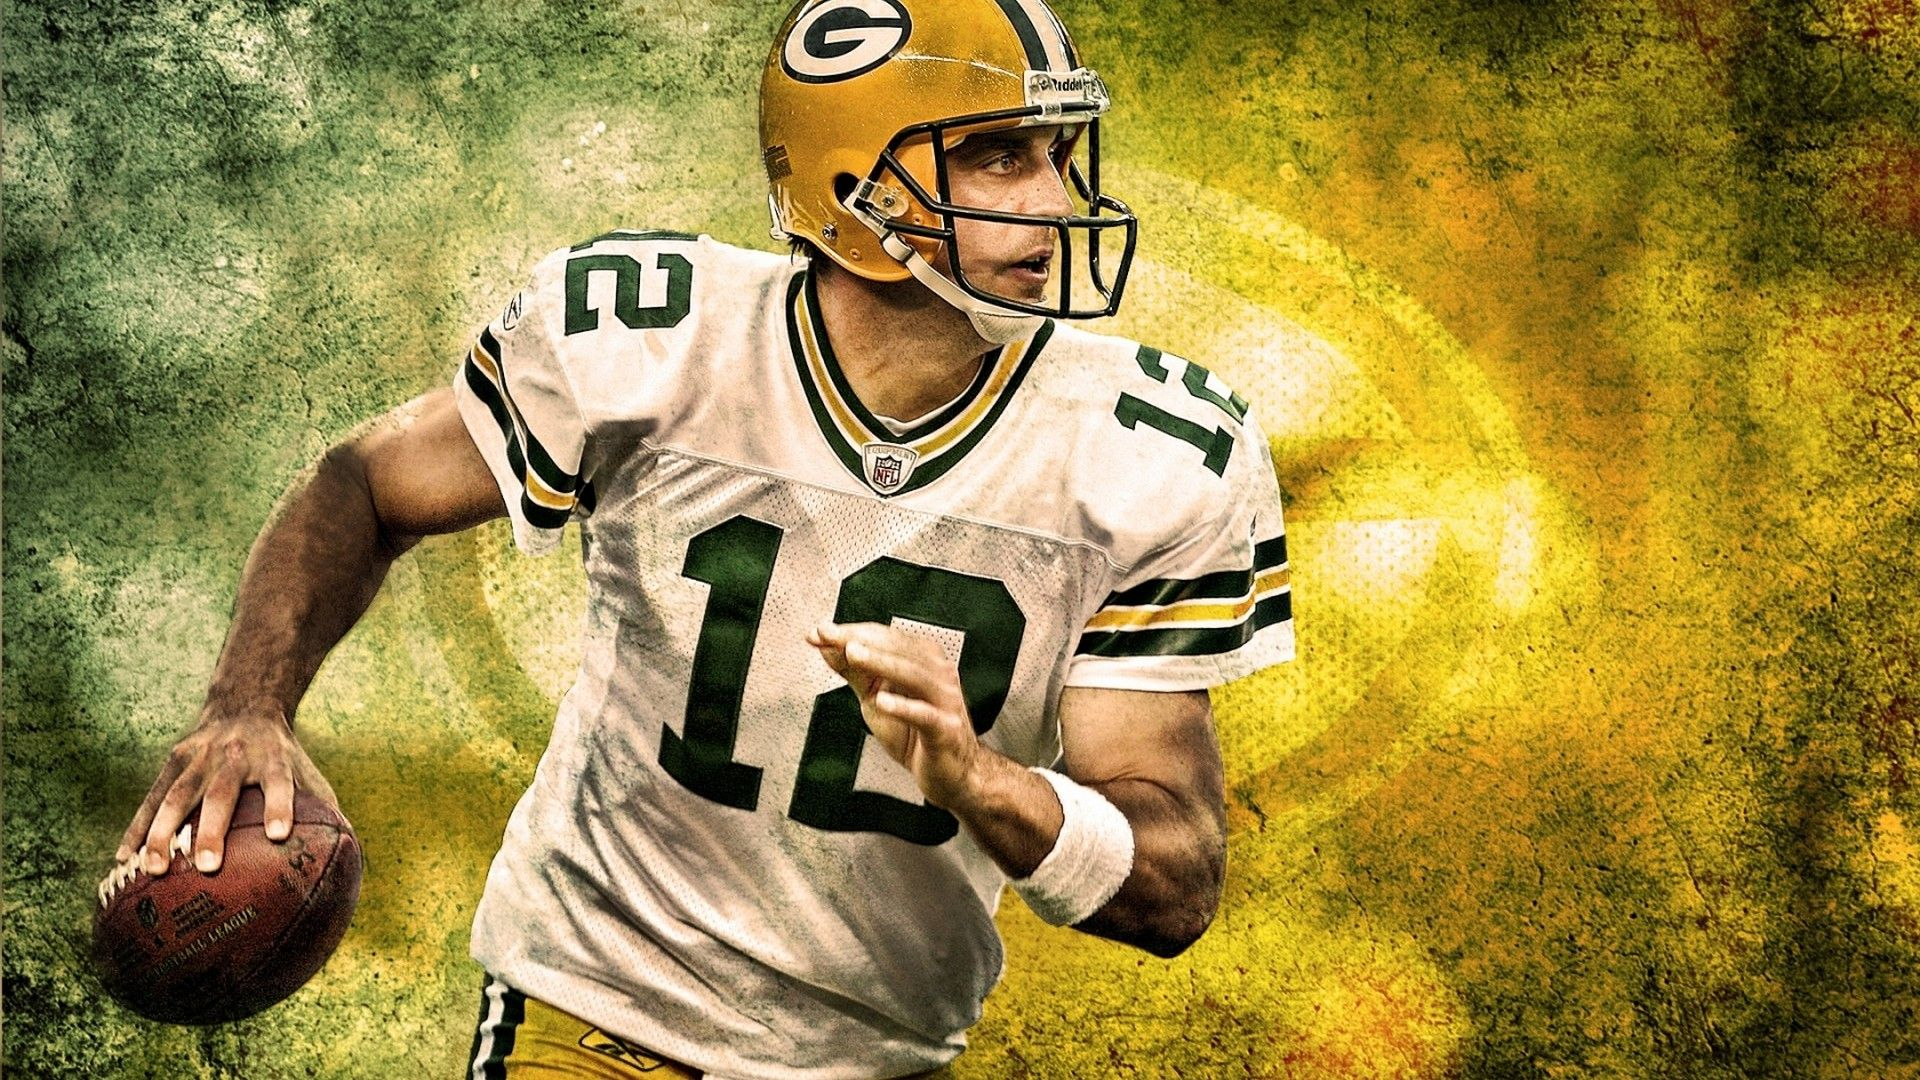 Nfl Wallpapers Nfl Football Wallpaper Aaron Rodgers Nfl Football